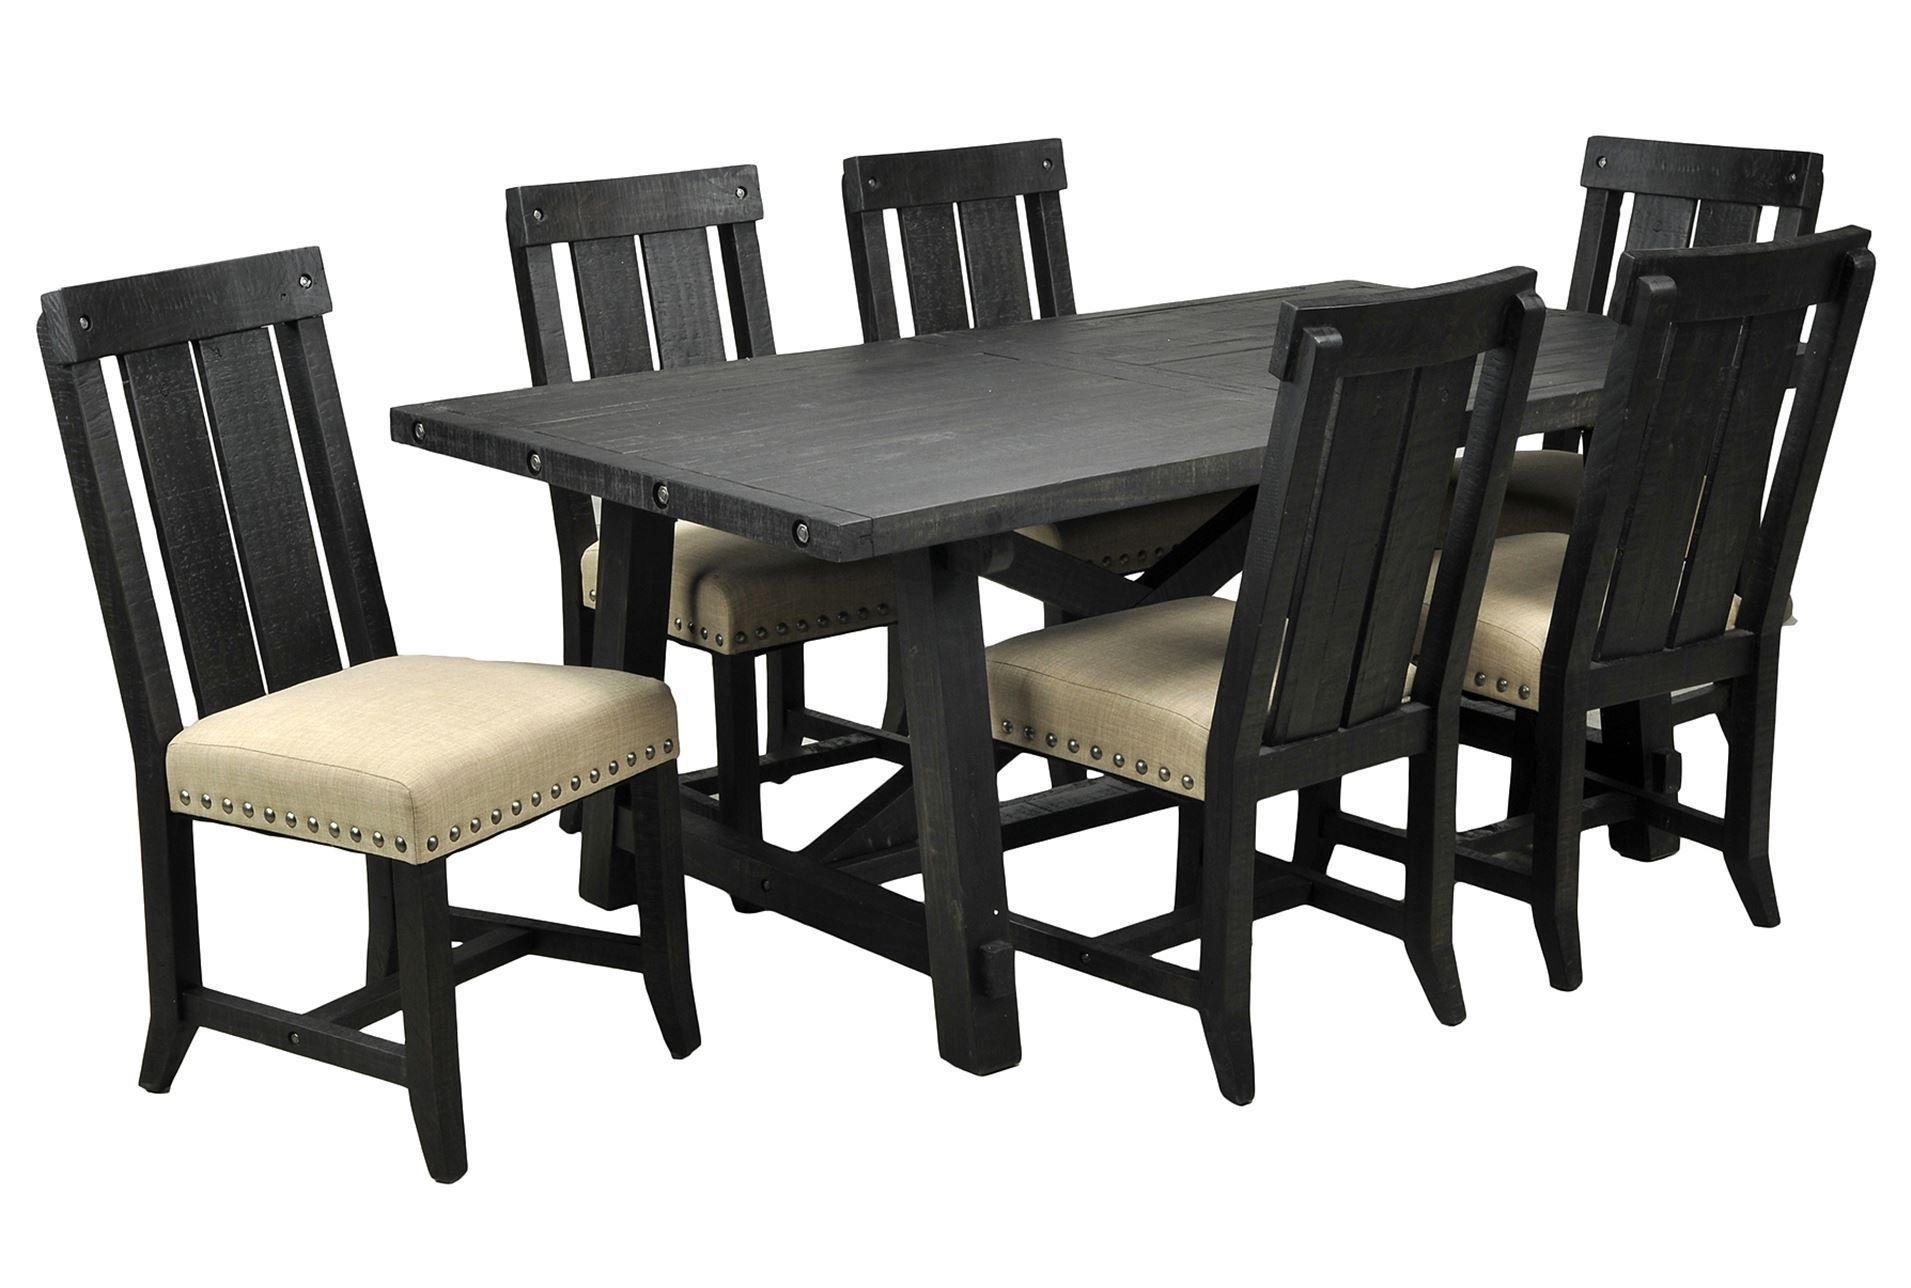 Jaxon 7 Piece Rectangle Dining Set W/wood Chairs | Sespe 3 General With Most Up To Date Jaxon 6 Piece Rectangle Dining Sets With Bench & Wood Chairs (Image 13 of 20)